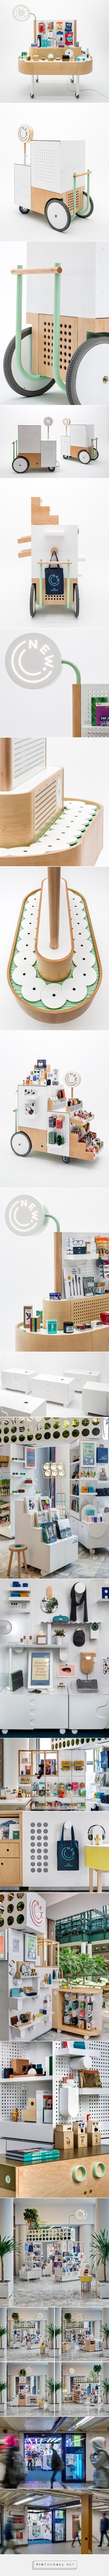 UM Project x The New Stand: Redefining Retail - Design Milk - created via https://pinthemall.net